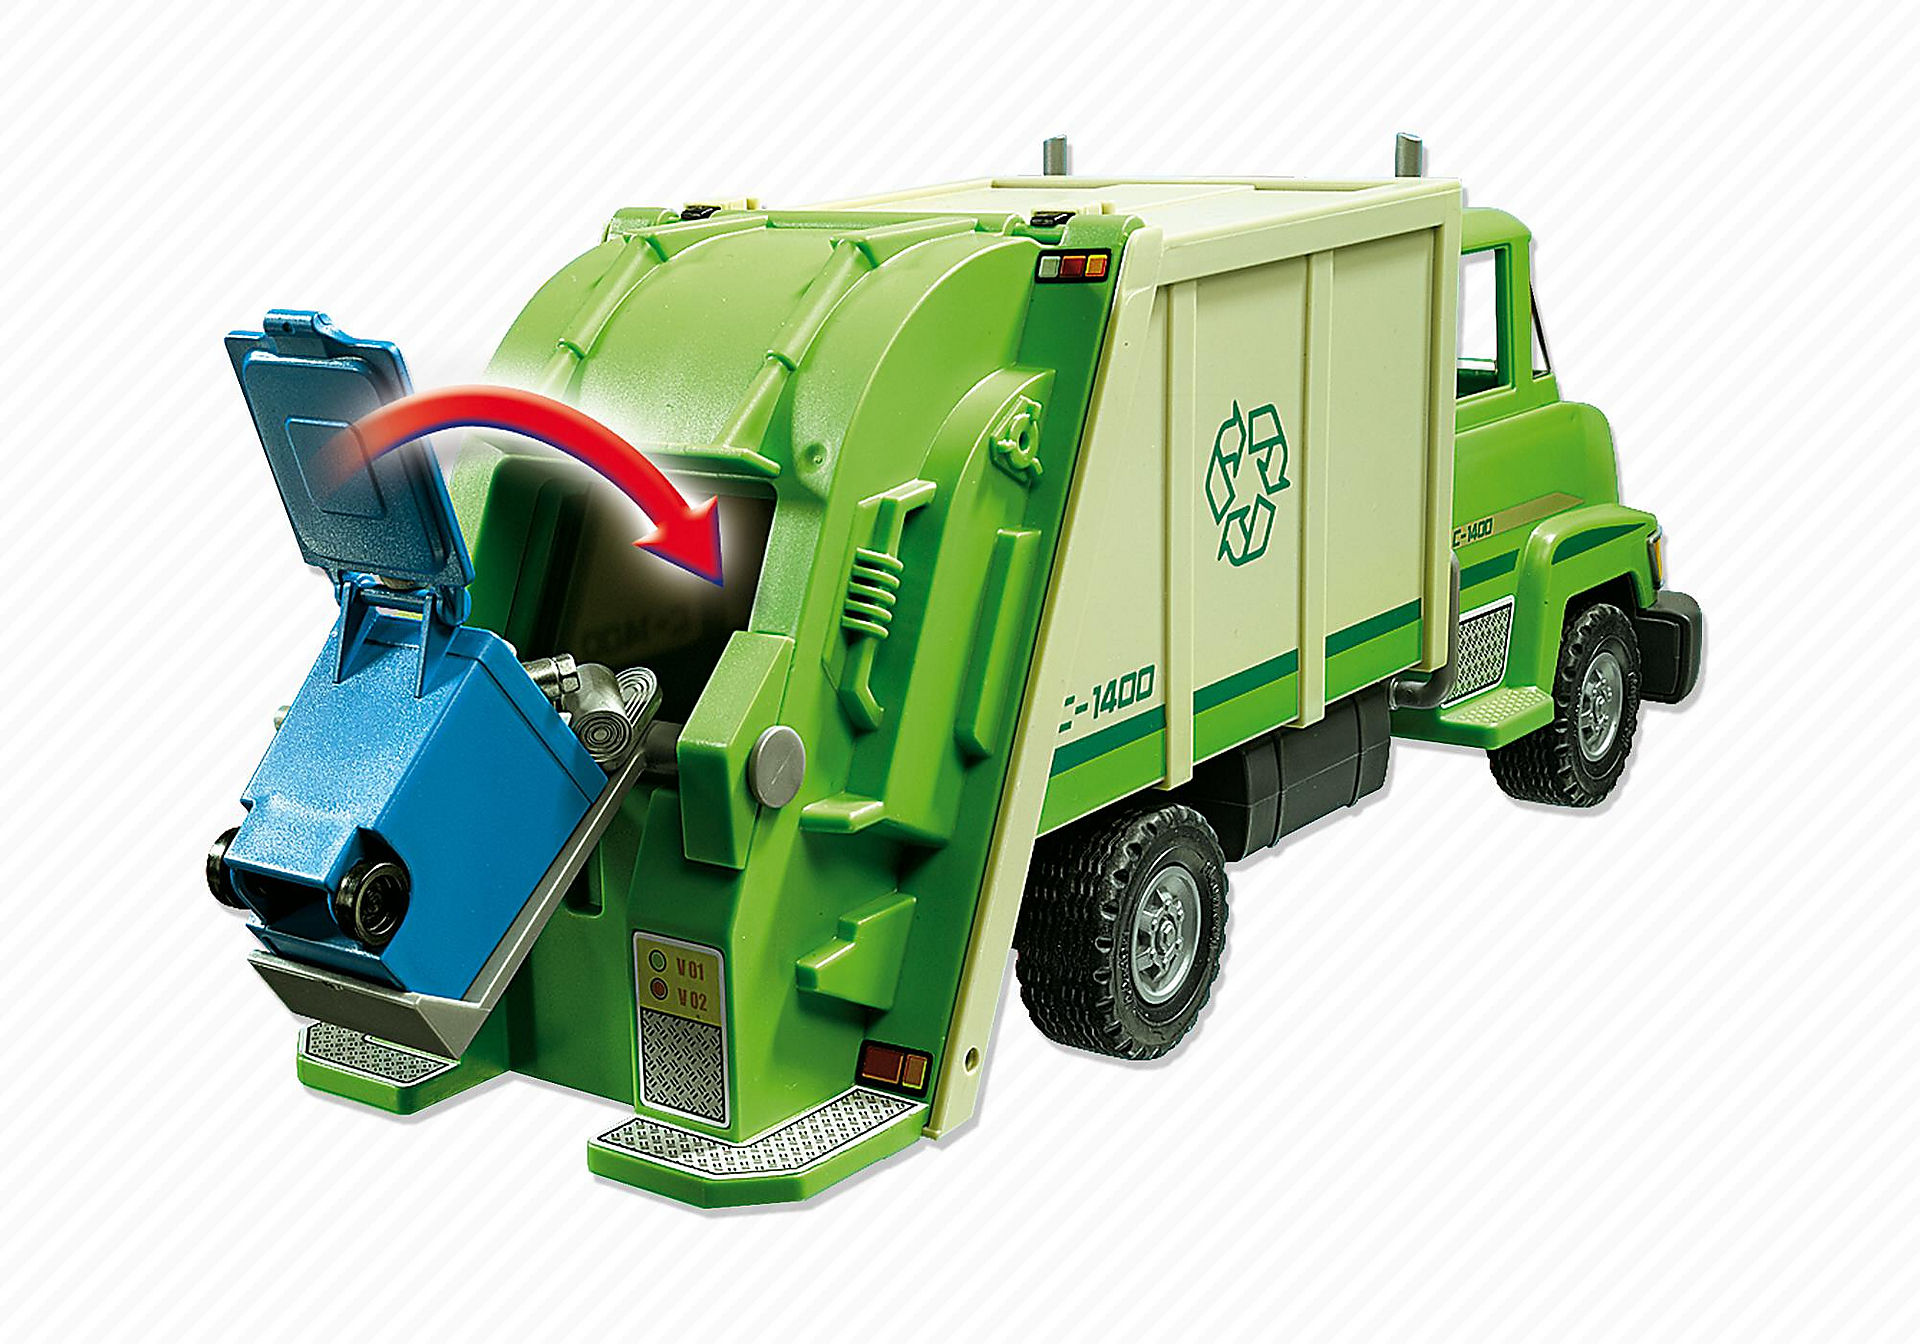 5938 Green Recycling Truck zoom image6